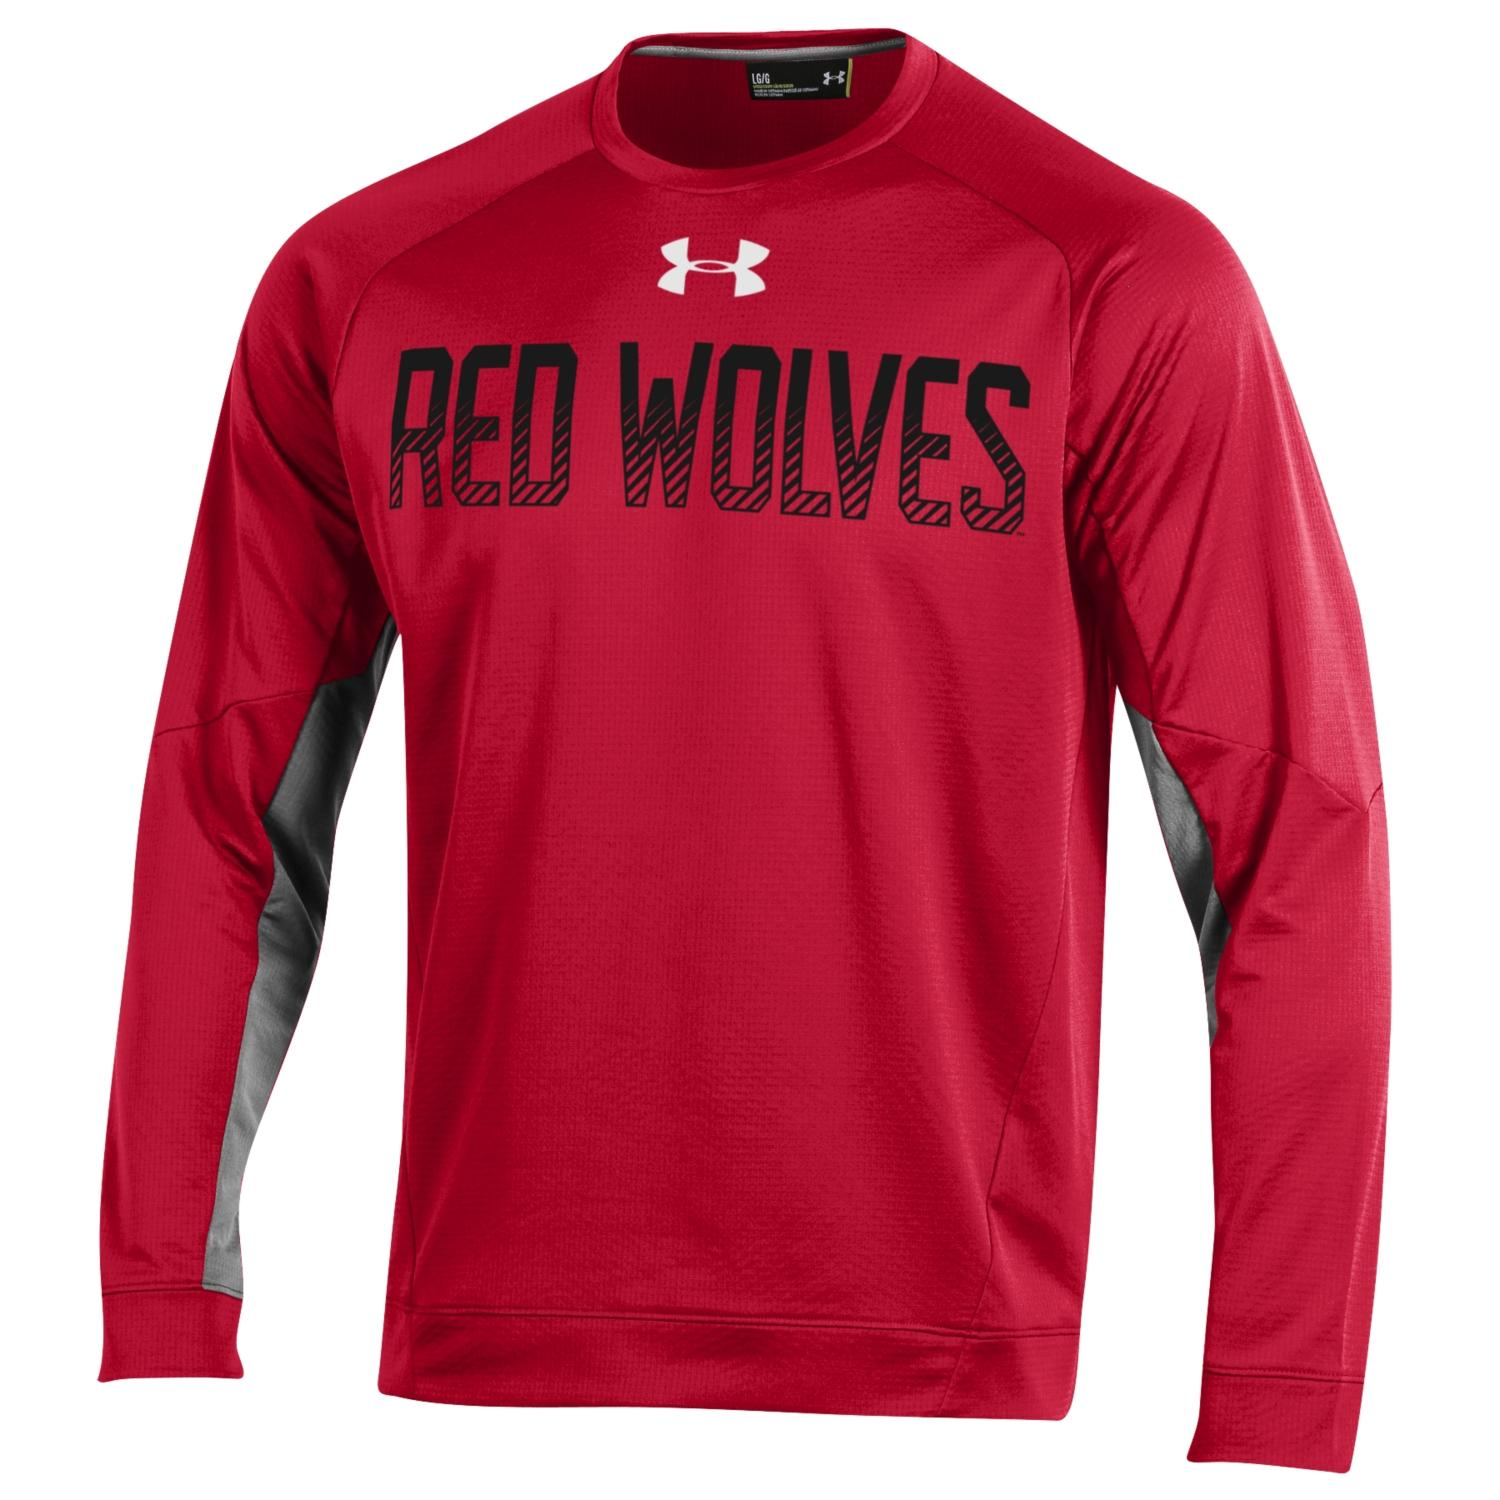 Red Wolves Players Fleece Crew